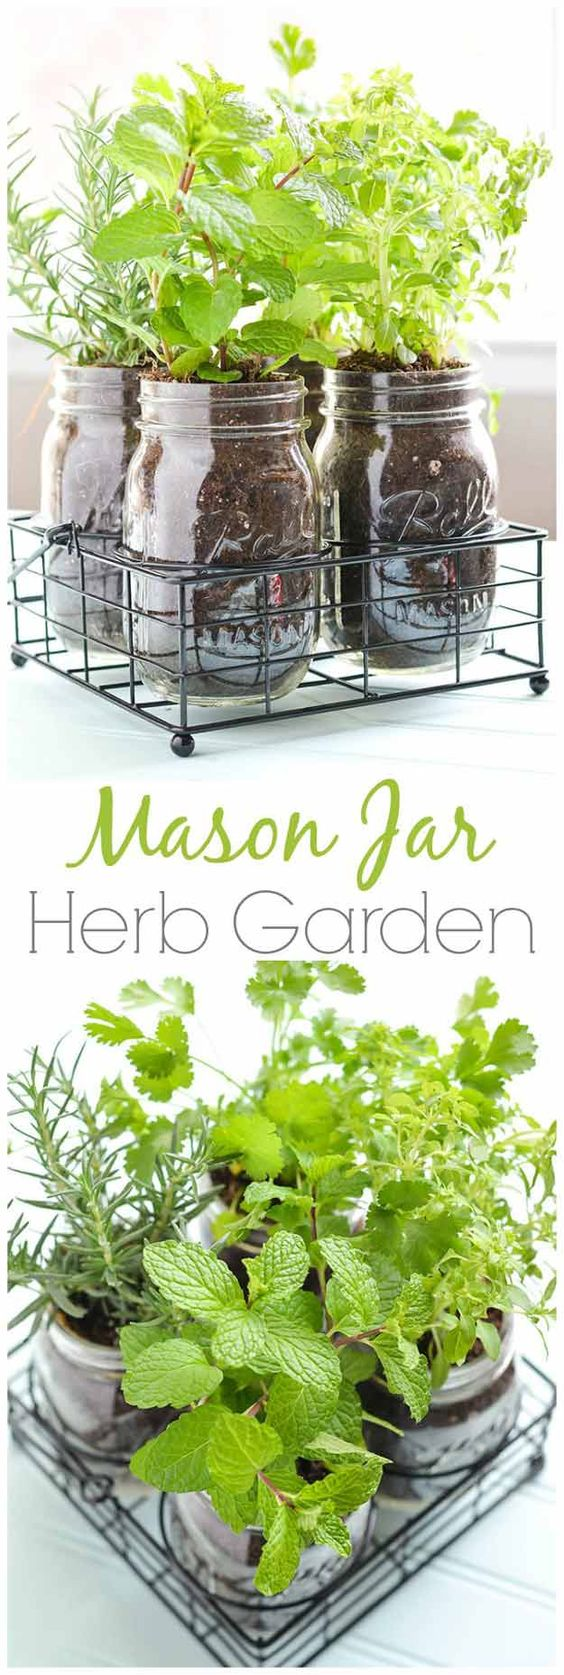 Check out Indoor Herb Garden Ideas at http://pioneersettler.com/indoor-herb-garden-ideas/